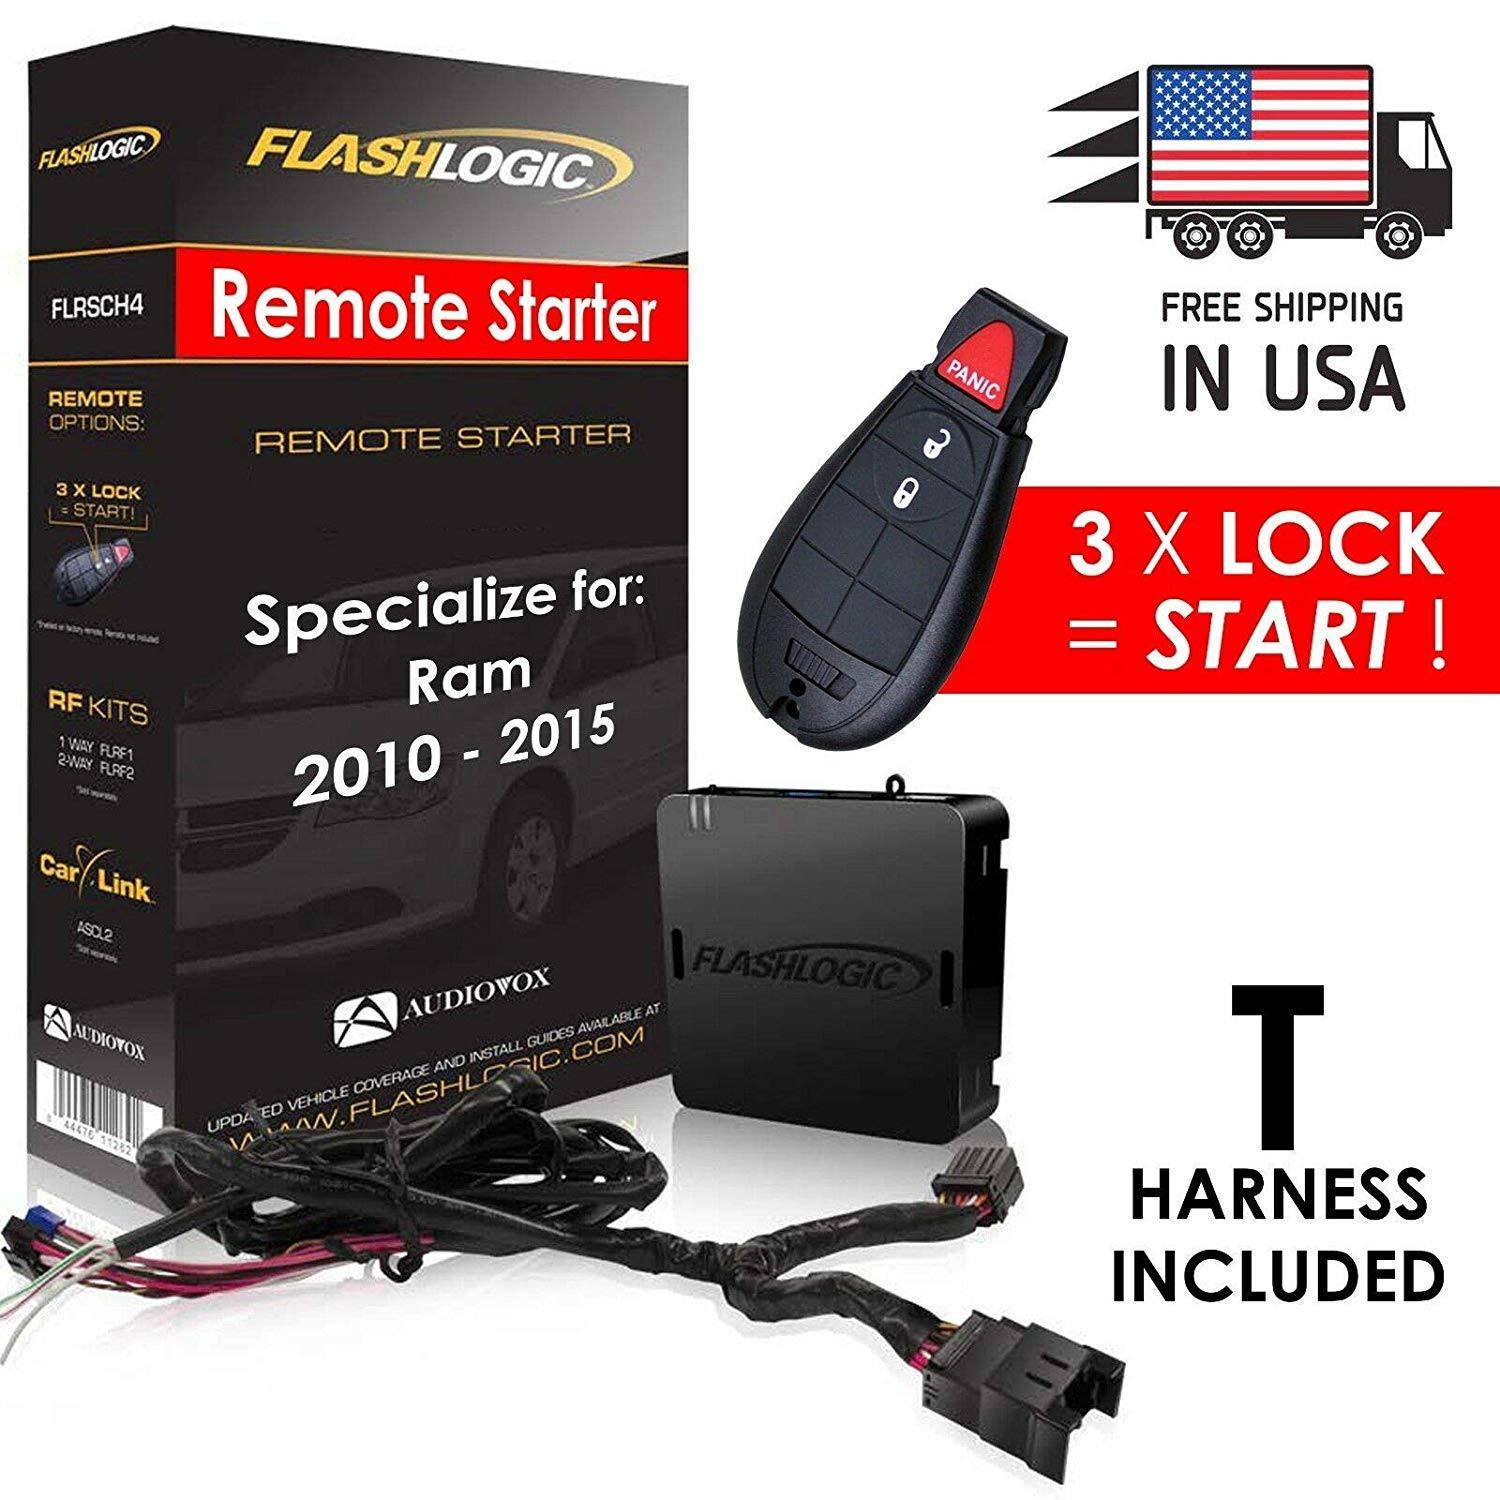 New Flashlogic Plug & Play Remote Start for Ram 2010-2015 - FLRSCH4 / R